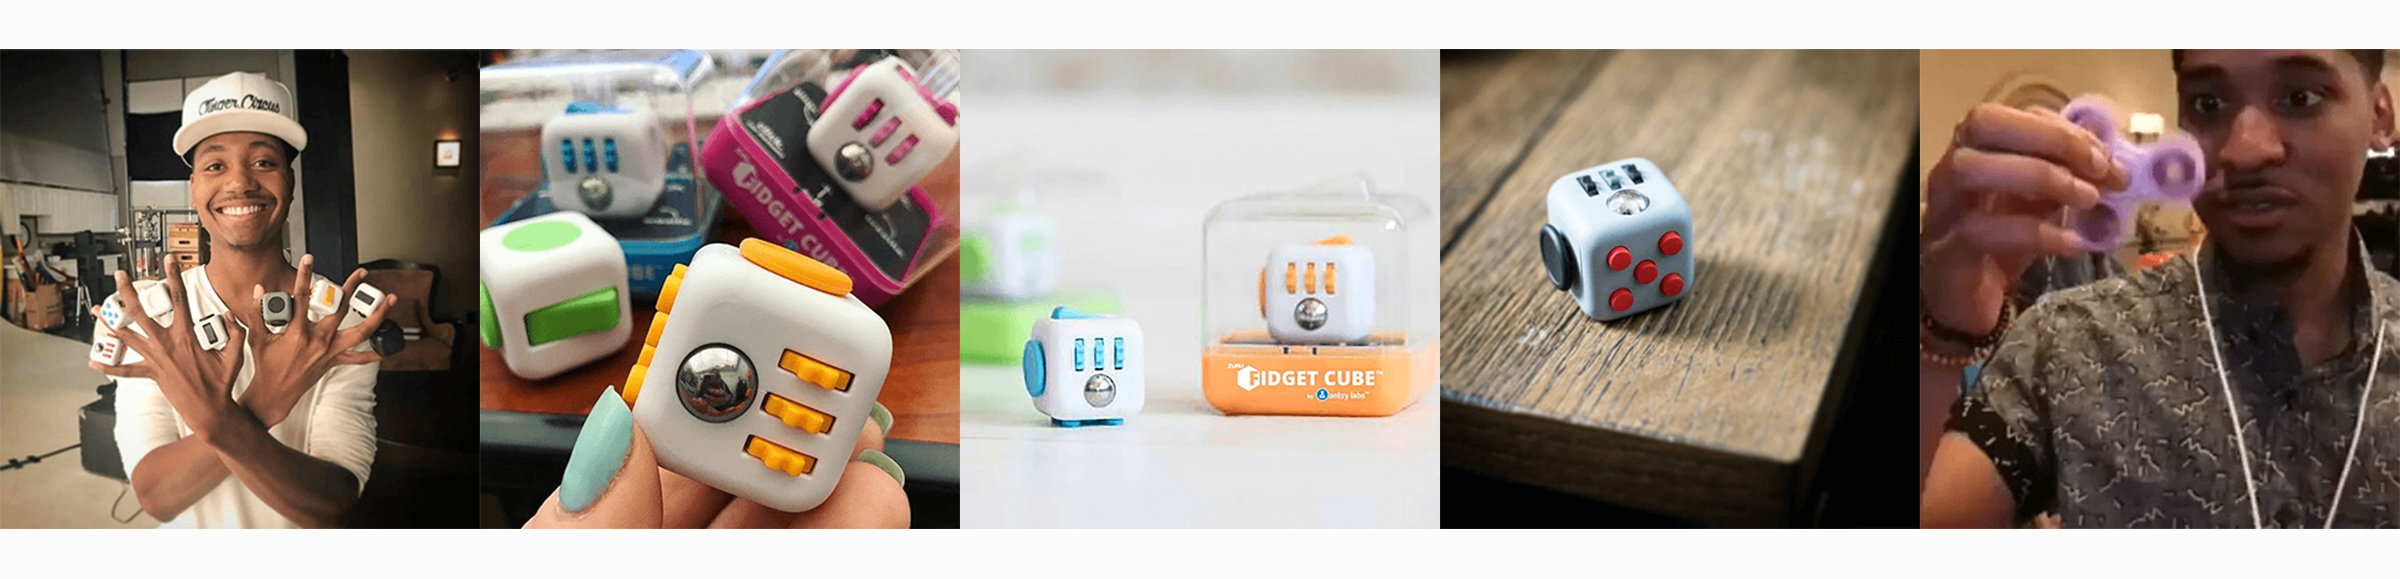 http://www.harveywholesale.co.nz/fidget-cubes-and-spinners-xidg68228.html - Dora Glitter Lava